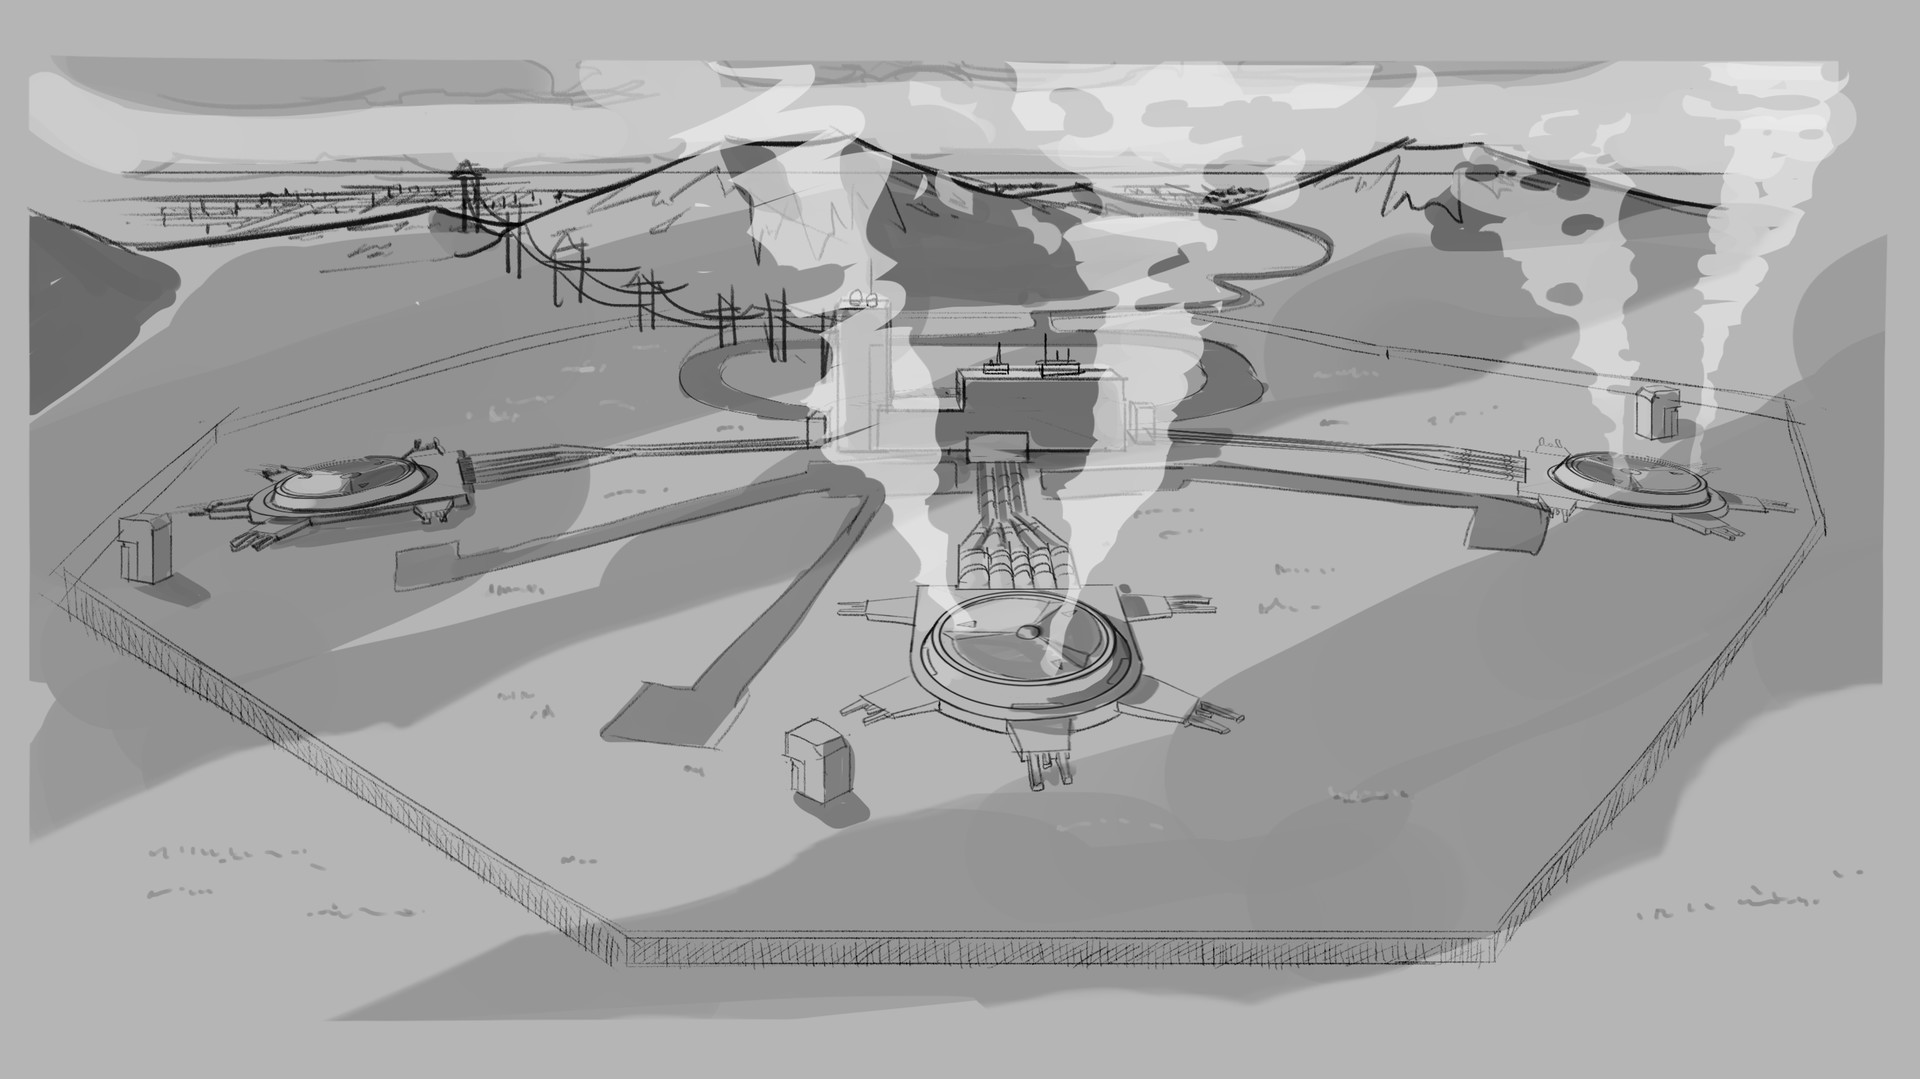 Erica Costello Geothermal Power Plant Concept Diagram 07 Wb2 Week 4 Development 04